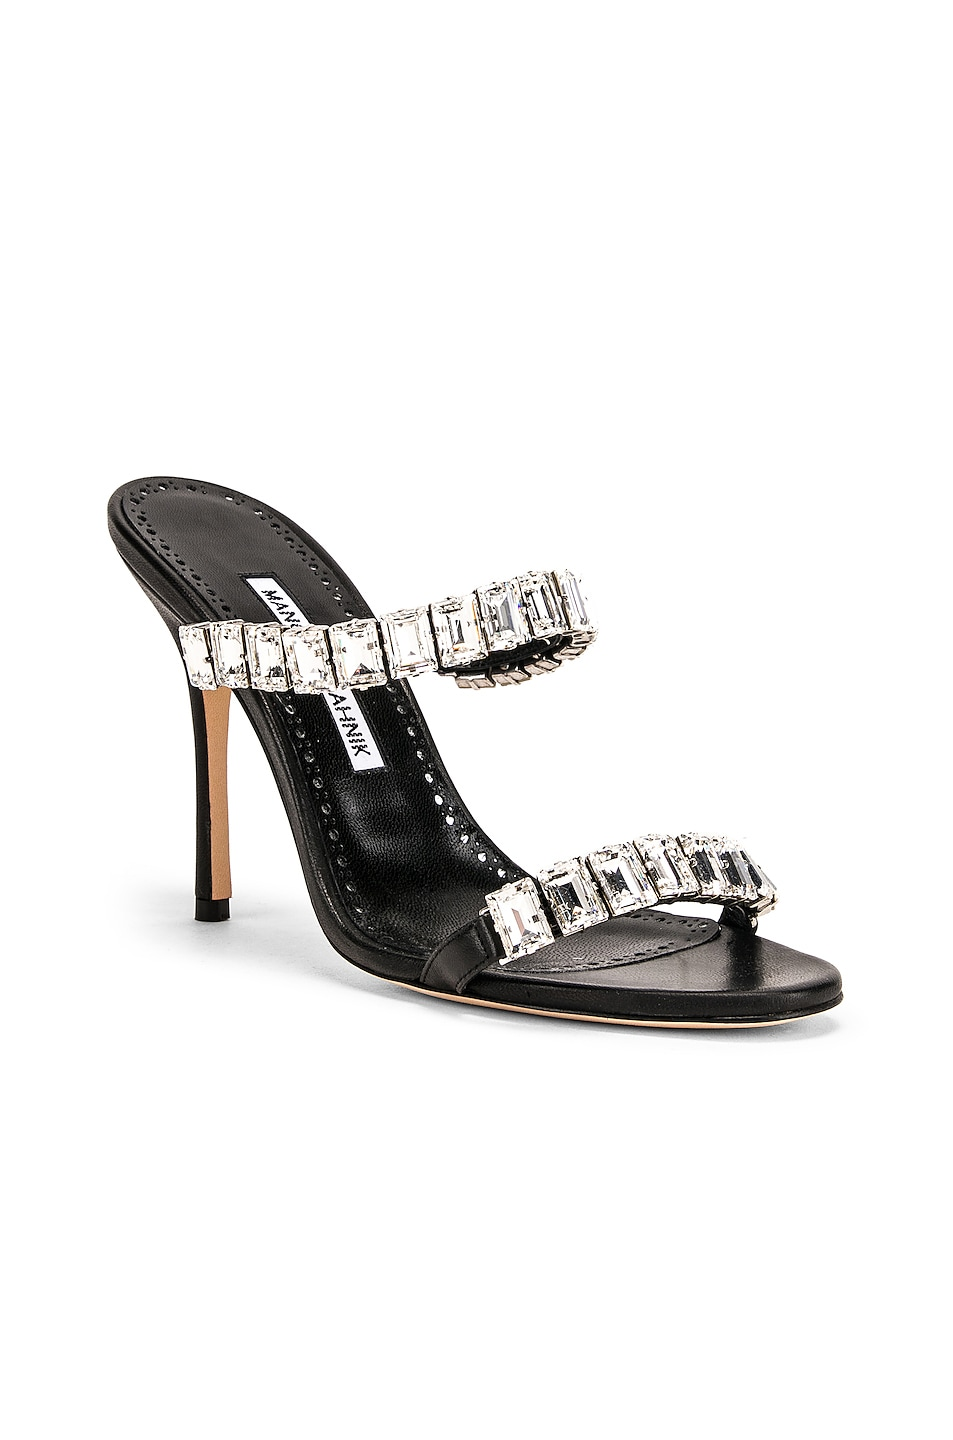 Image 2 of Manolo Blahnik Dallitre 105 Sandal in Nero Nappa